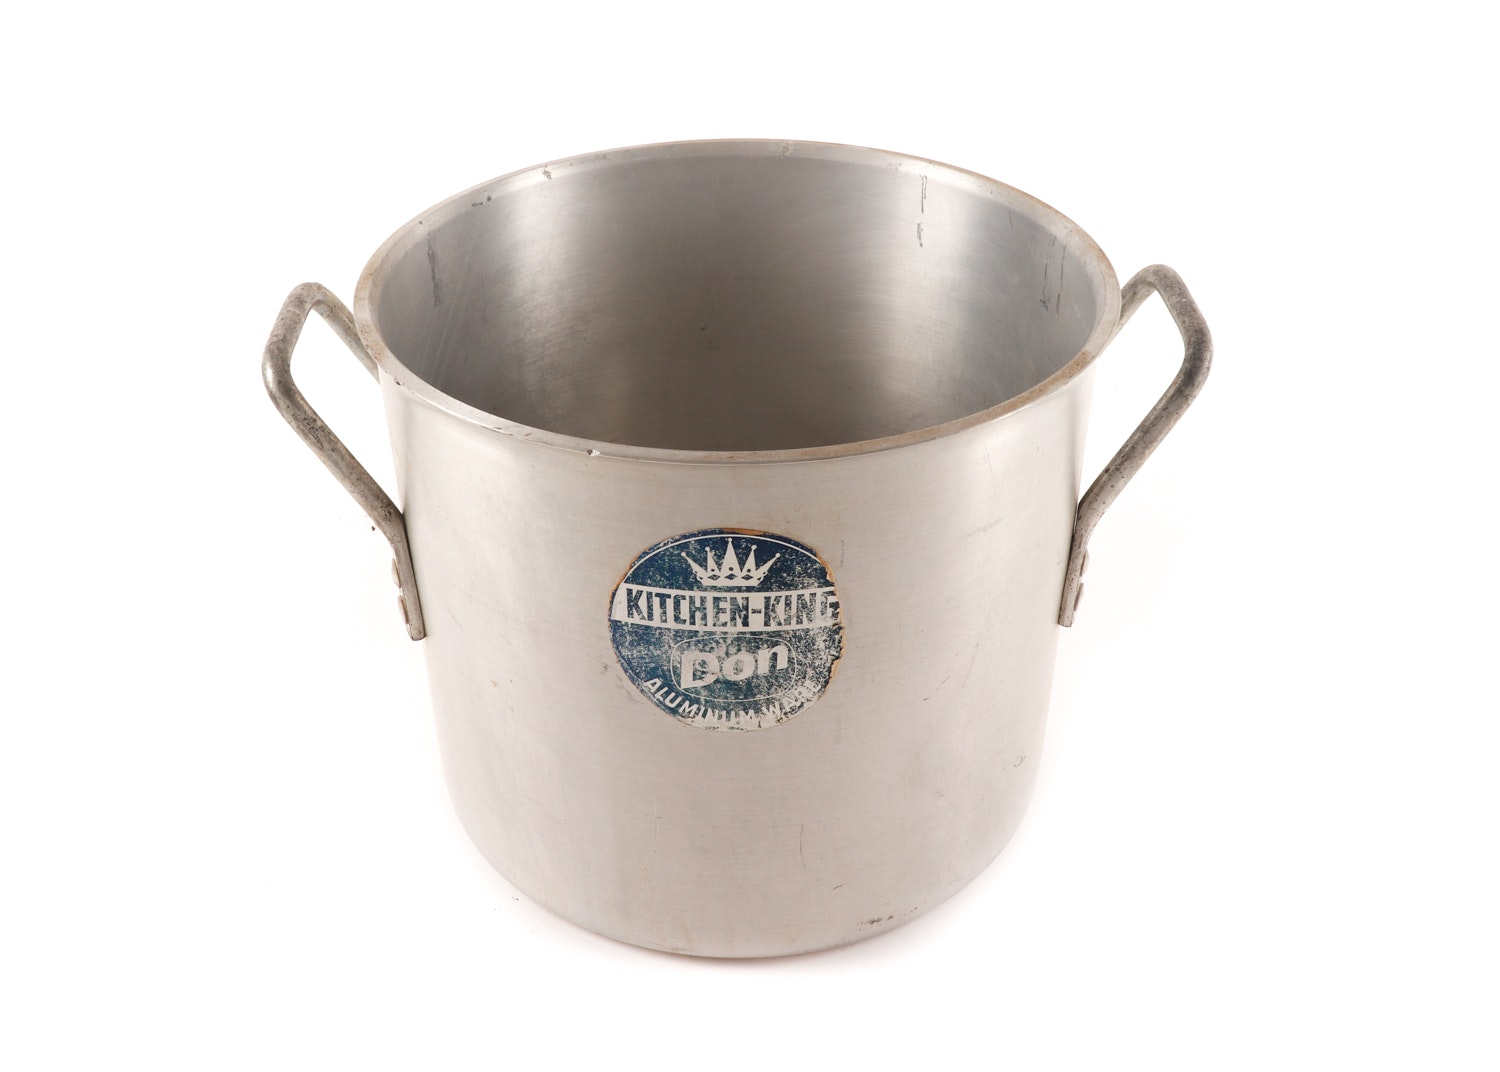 Vintage Kitchen-King Aluminum Stockpot